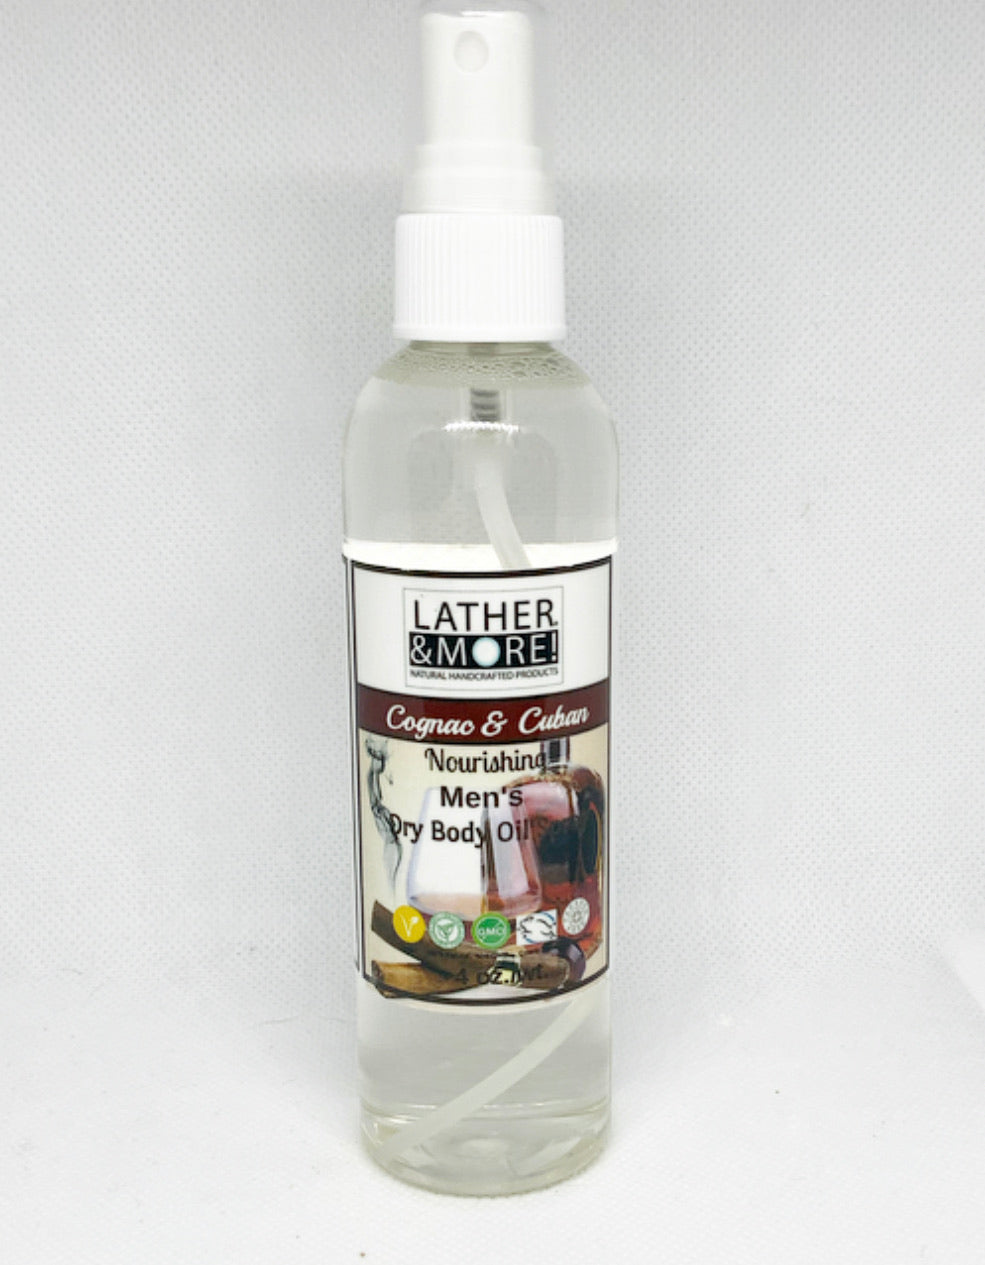 Cognac and Cuban Dry Body Oil